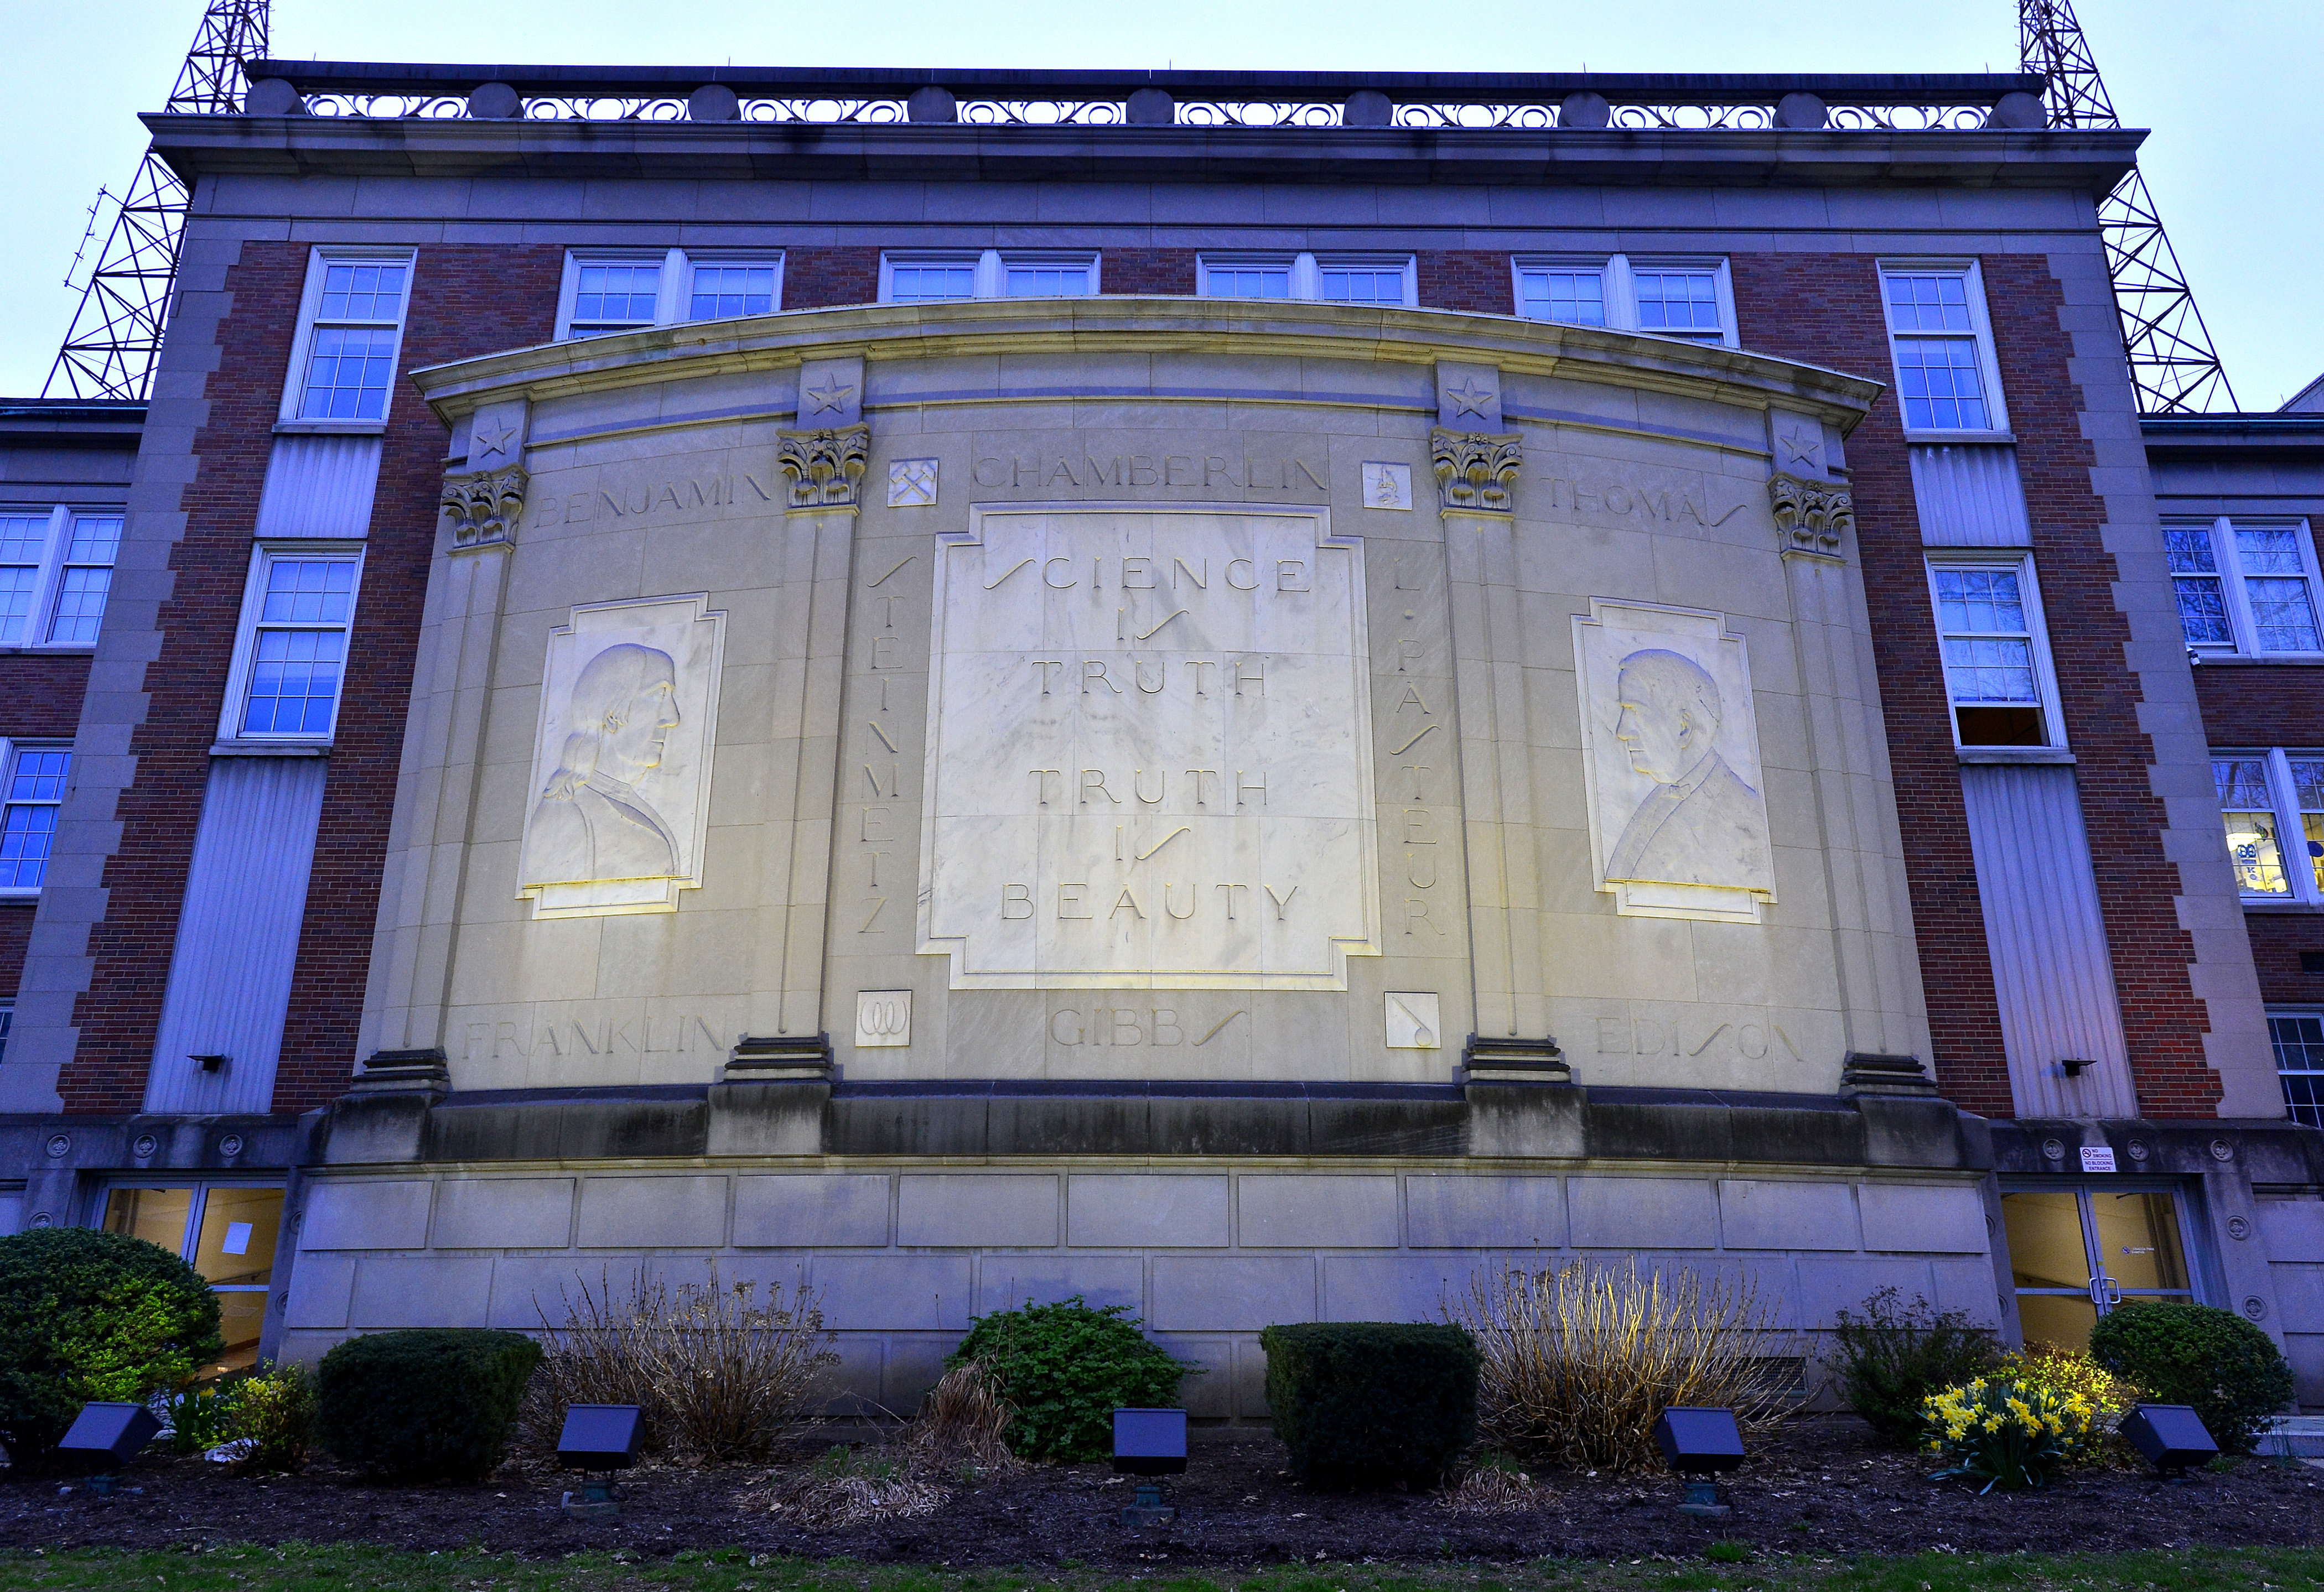 The stone bas-relief on the north side pays homage to famous scientists such as Thomas Edison and Benjamin Franklin.